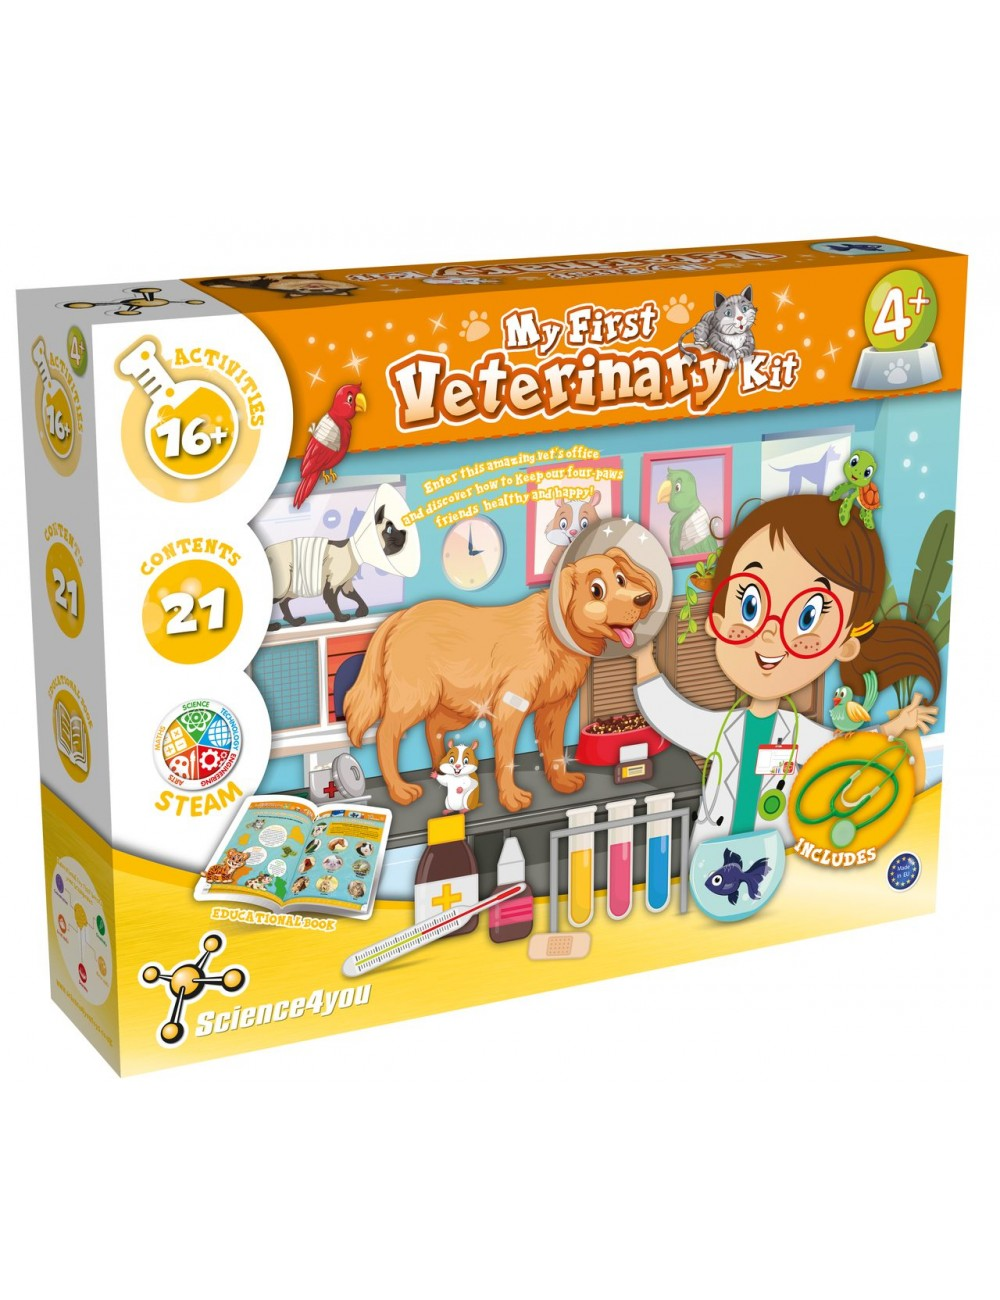 Veterinary Toys